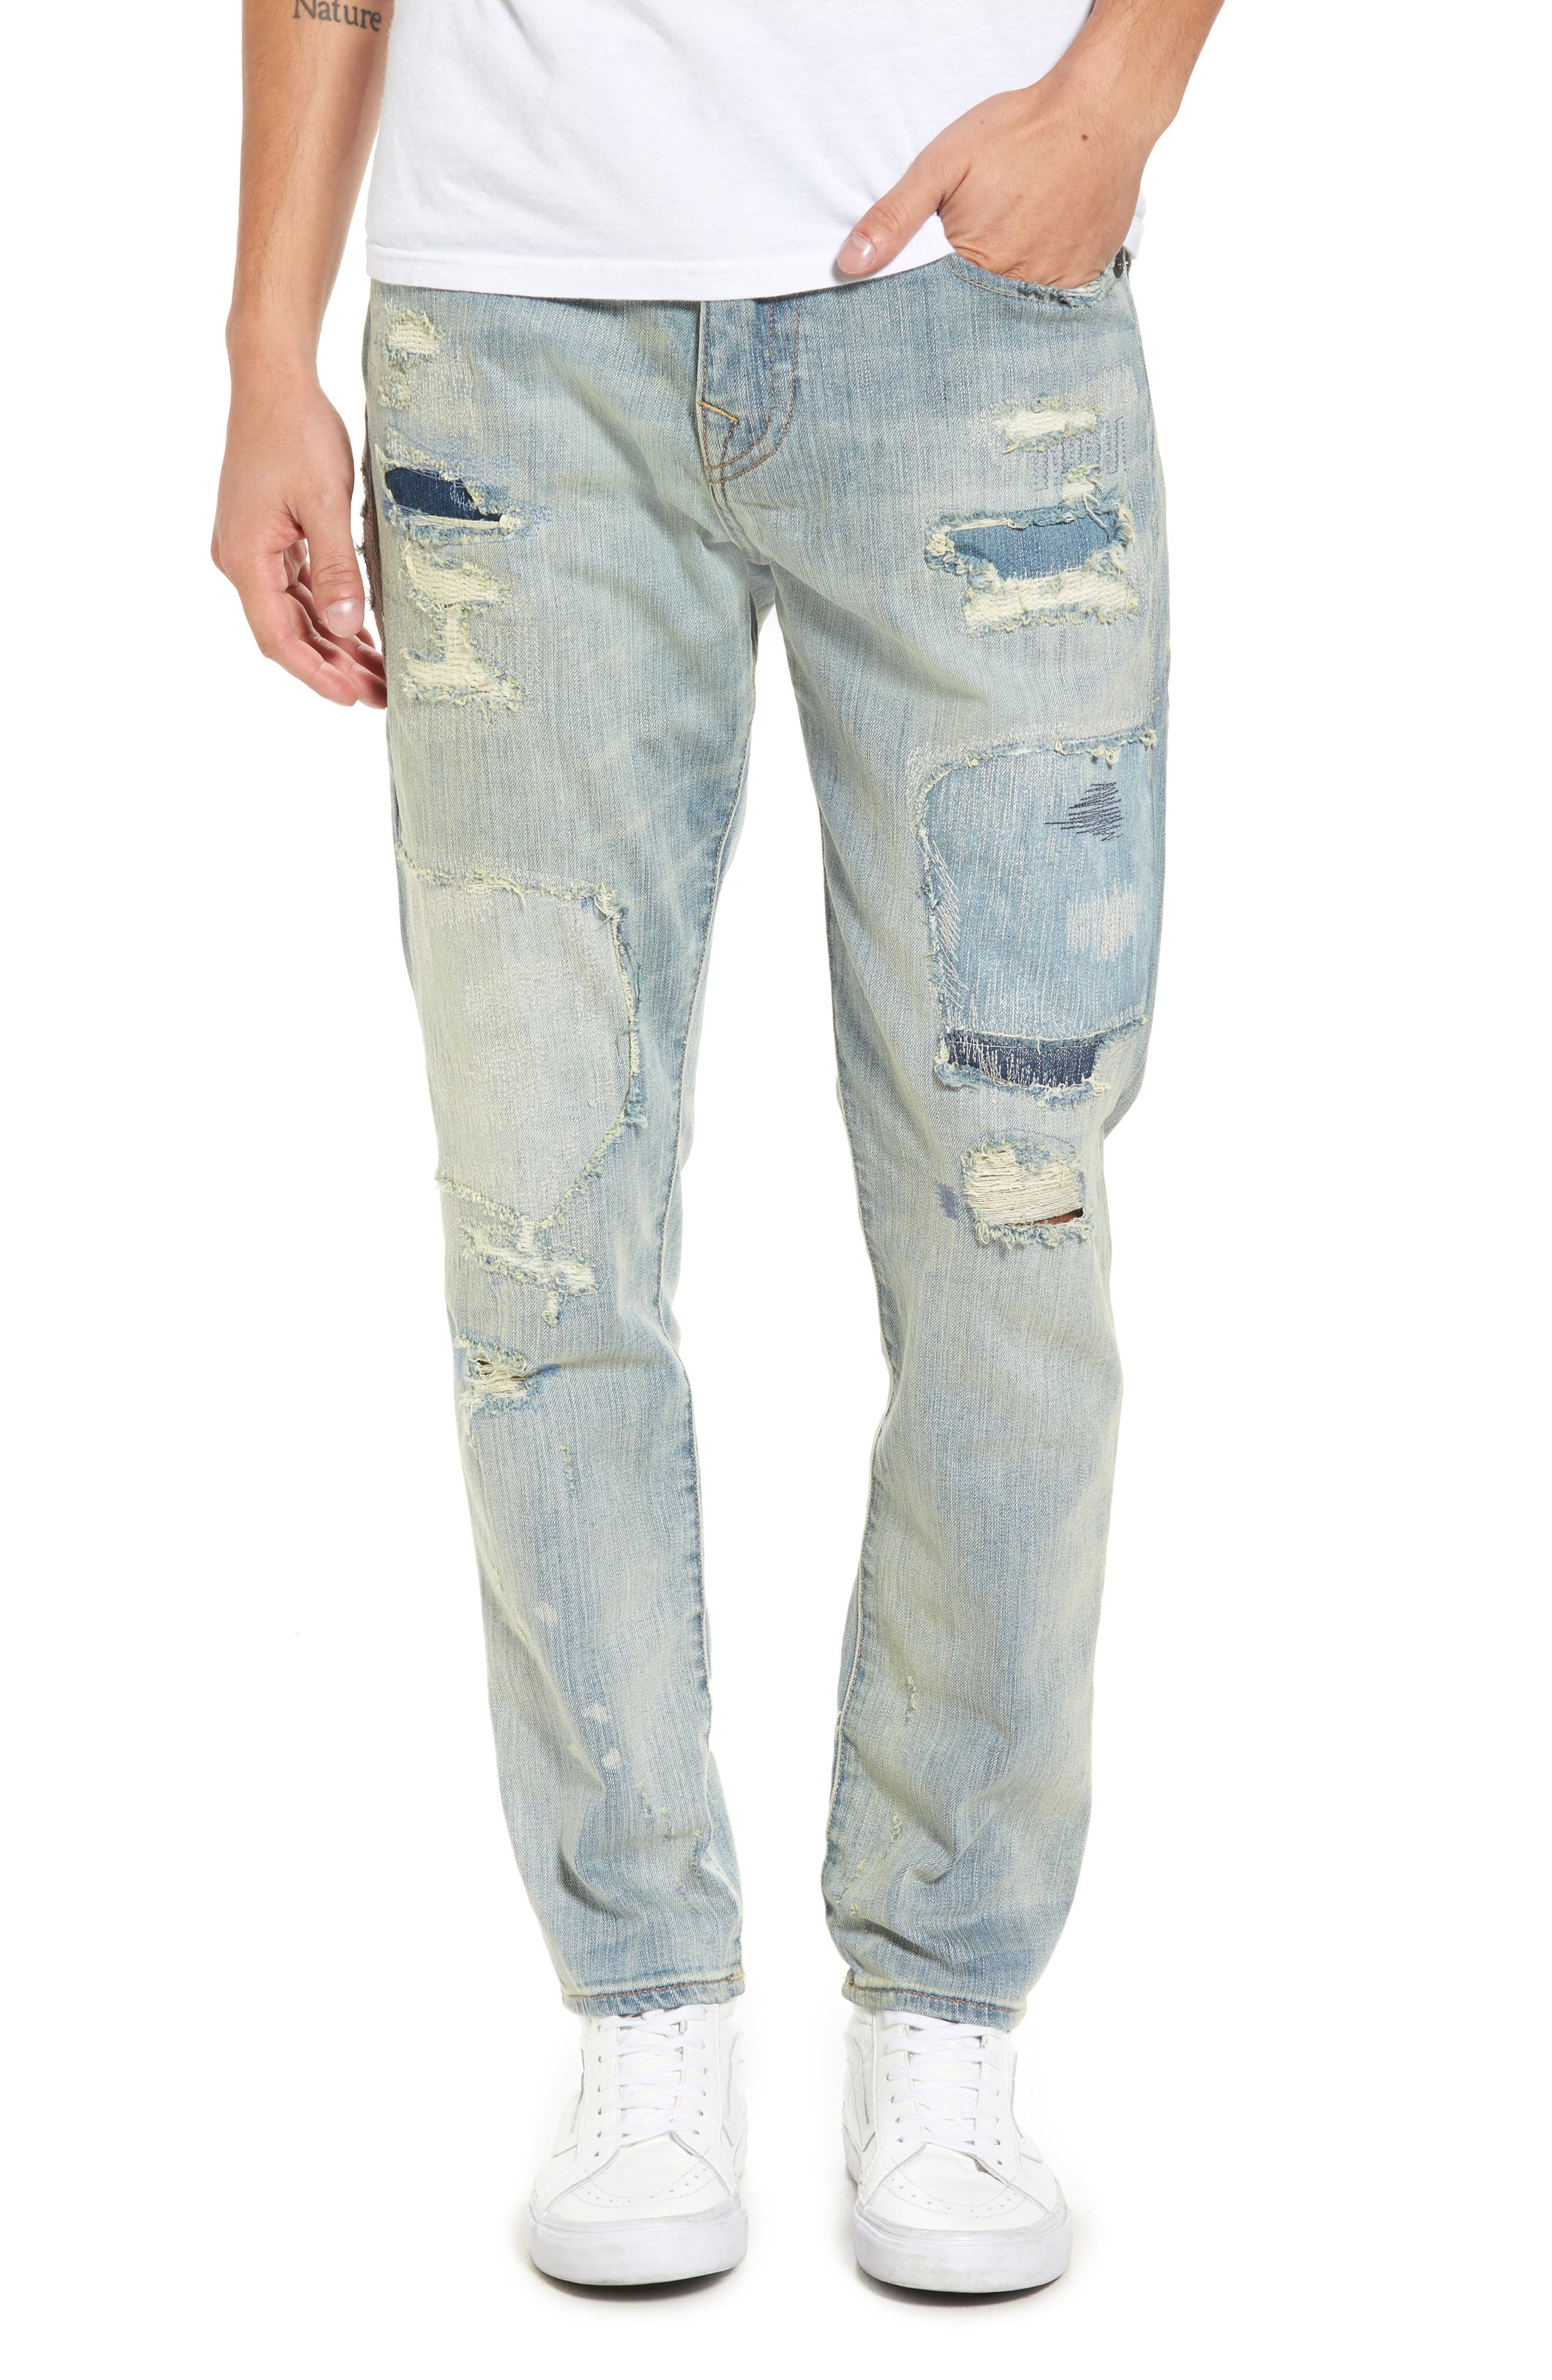 Mick Skinny Fit Jeans,                         Main,                         color, Indigo Immortal